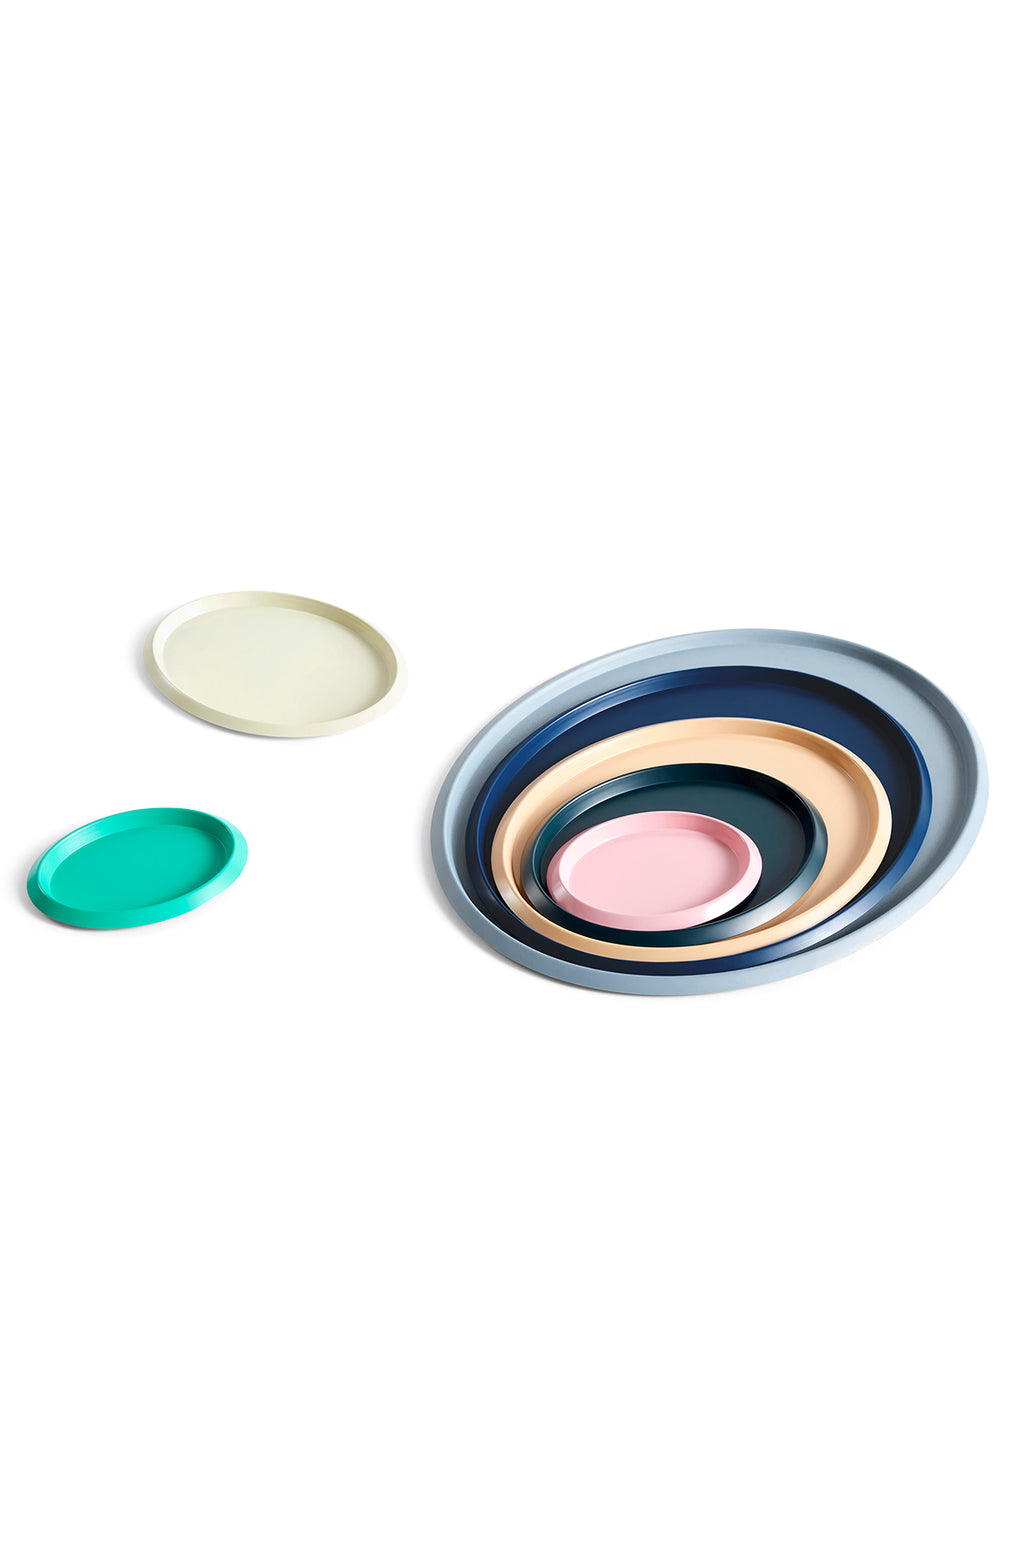 X-Small Ellipse Tray in Green